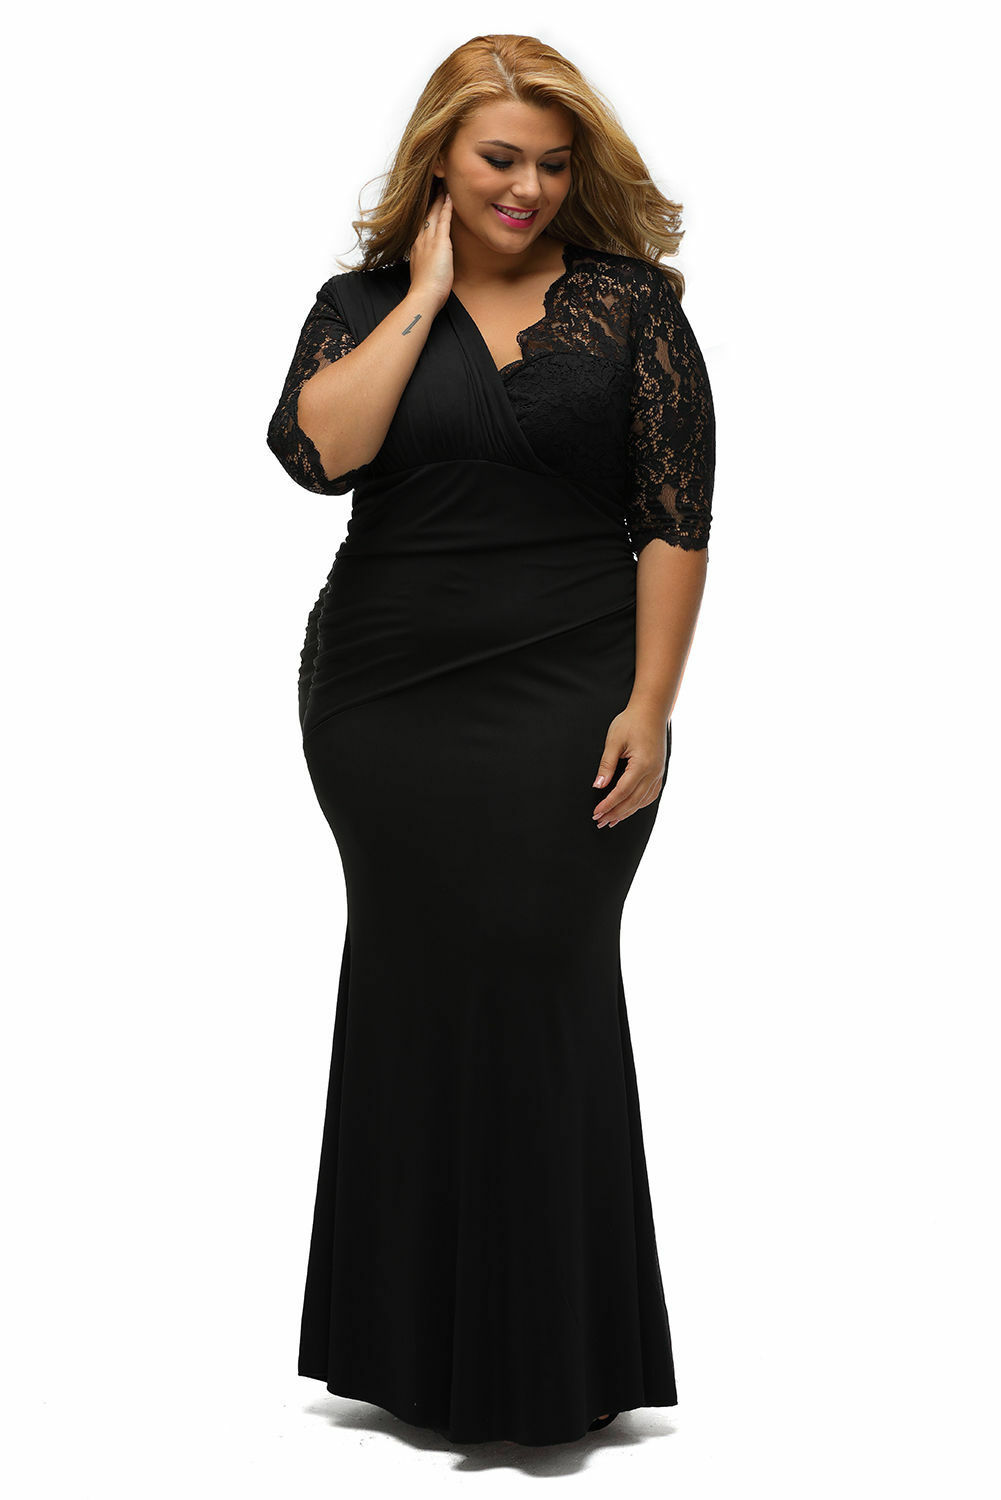 e9a4c466873 ... Details about Plus Size Black Maxi Evening Dress with Lace Inserts Gown  Party Prom Dinner ...